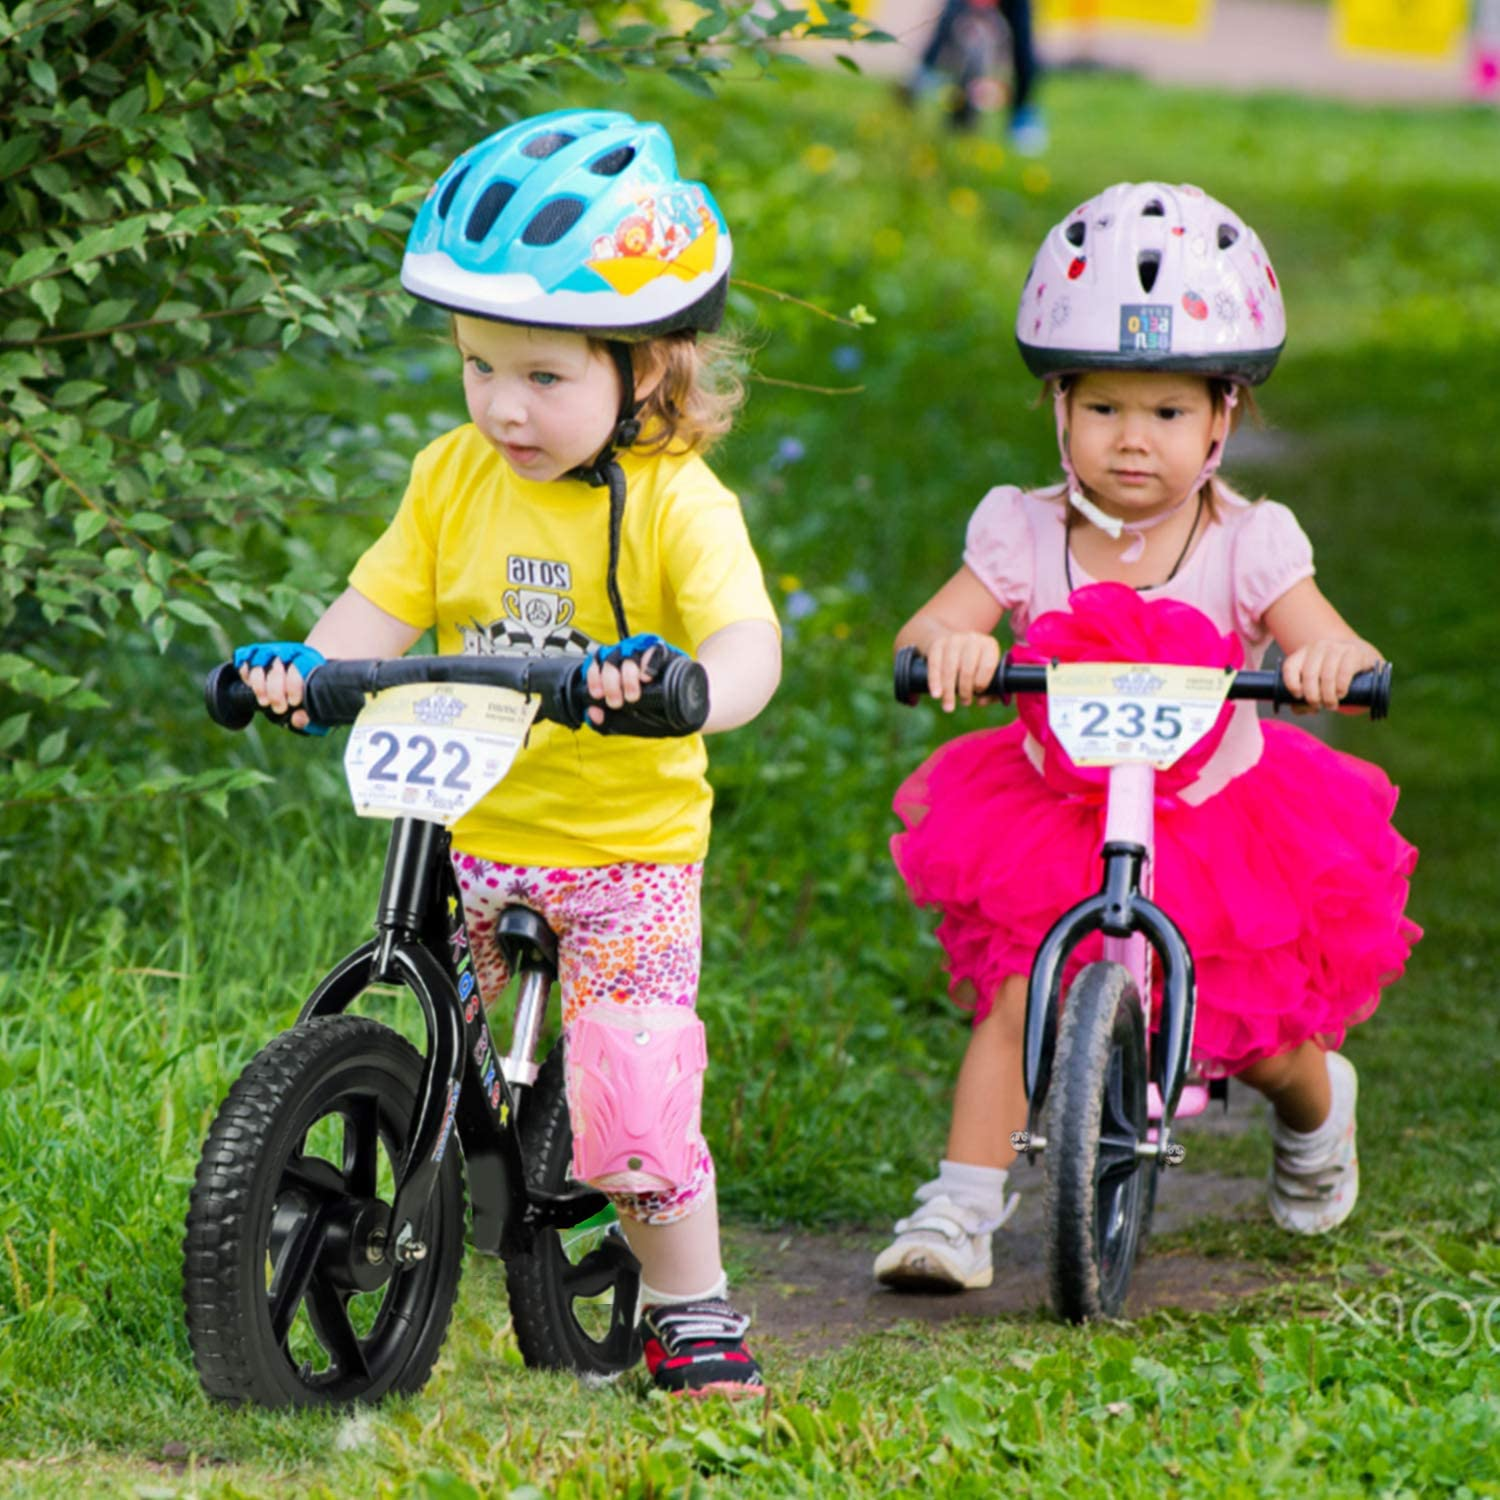 12 Balance Bike for Boys and Girls Lightweight No-Pedal Toddlers Walking Bicycle for Children Age 2,3,4,5,6